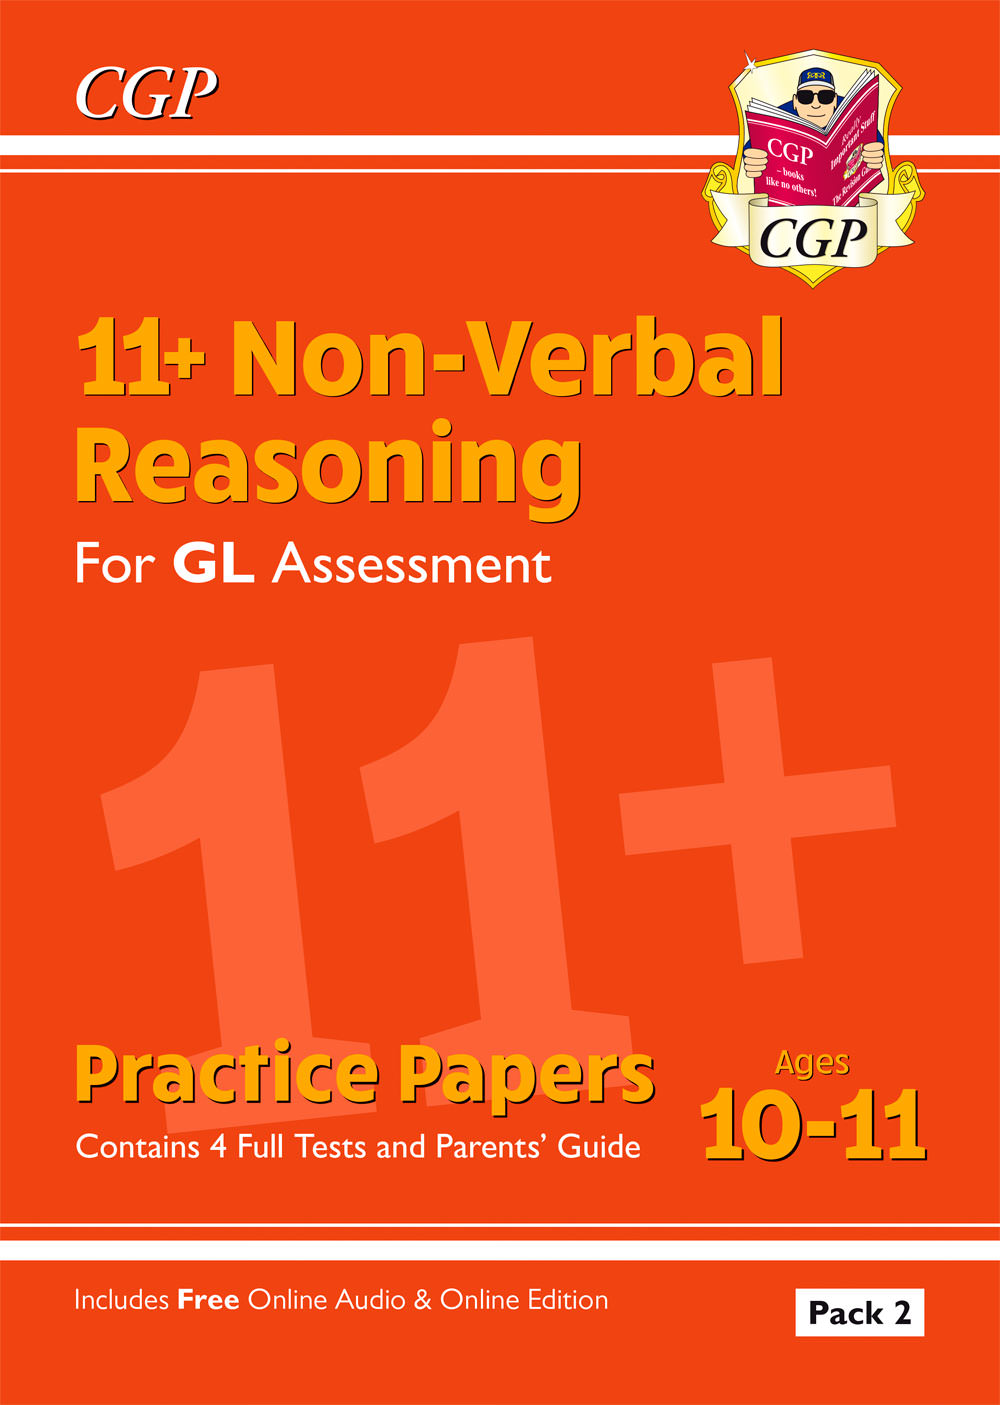 NHT2E2 - 11+ GL Non-Verbal Reasoning Practice Papers: Ages 10-11 Pack 2 (inc Parents' Guide & Online